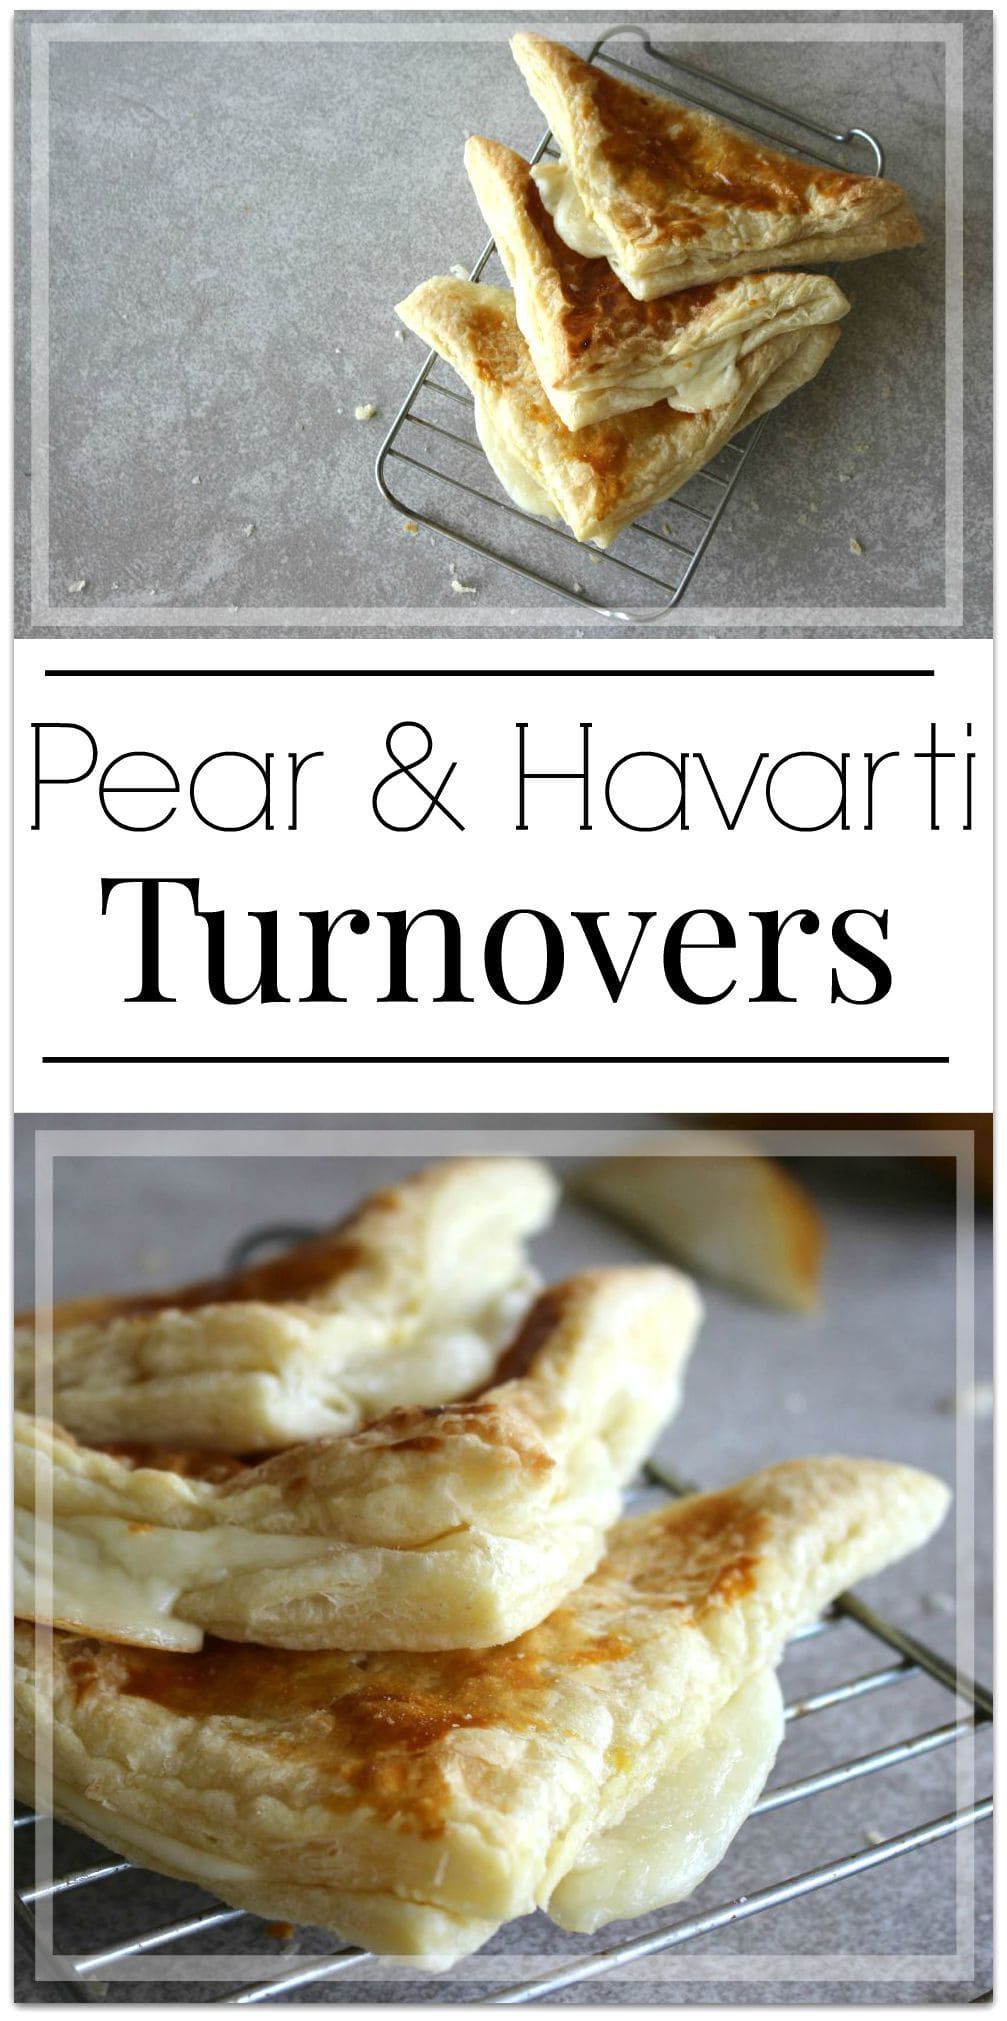 These Pear & Havarti Turnovers are perfect for a healthy after school snack!